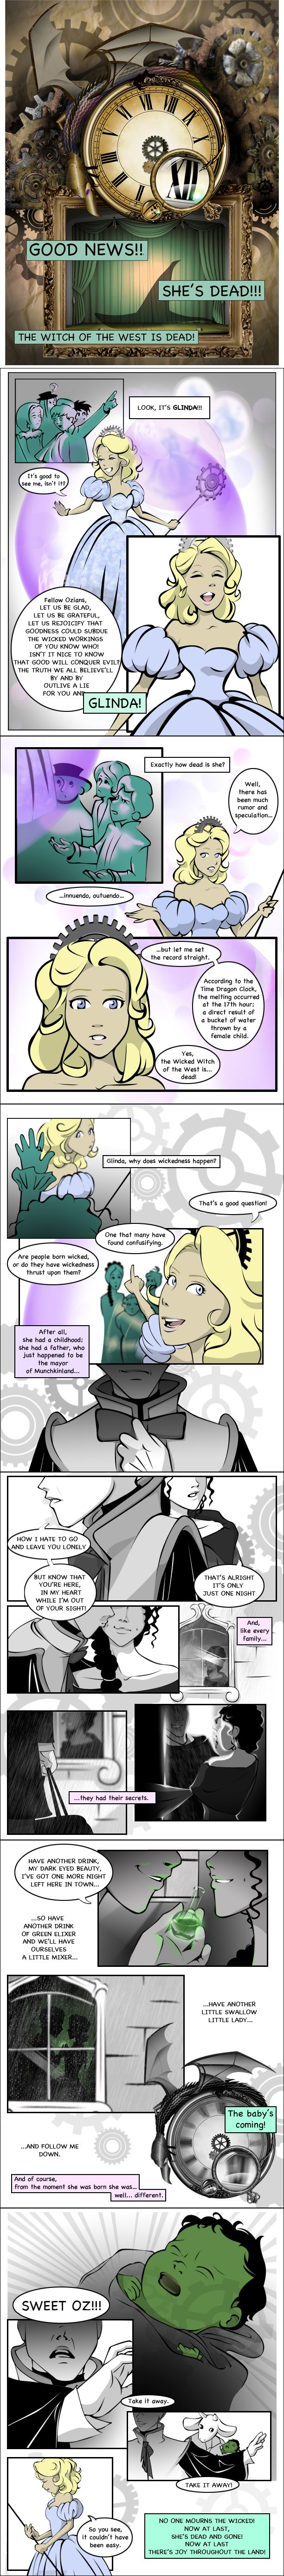 Wicked: A Graphic Novel, Part 1. Of course I sang it all as I was reading it too